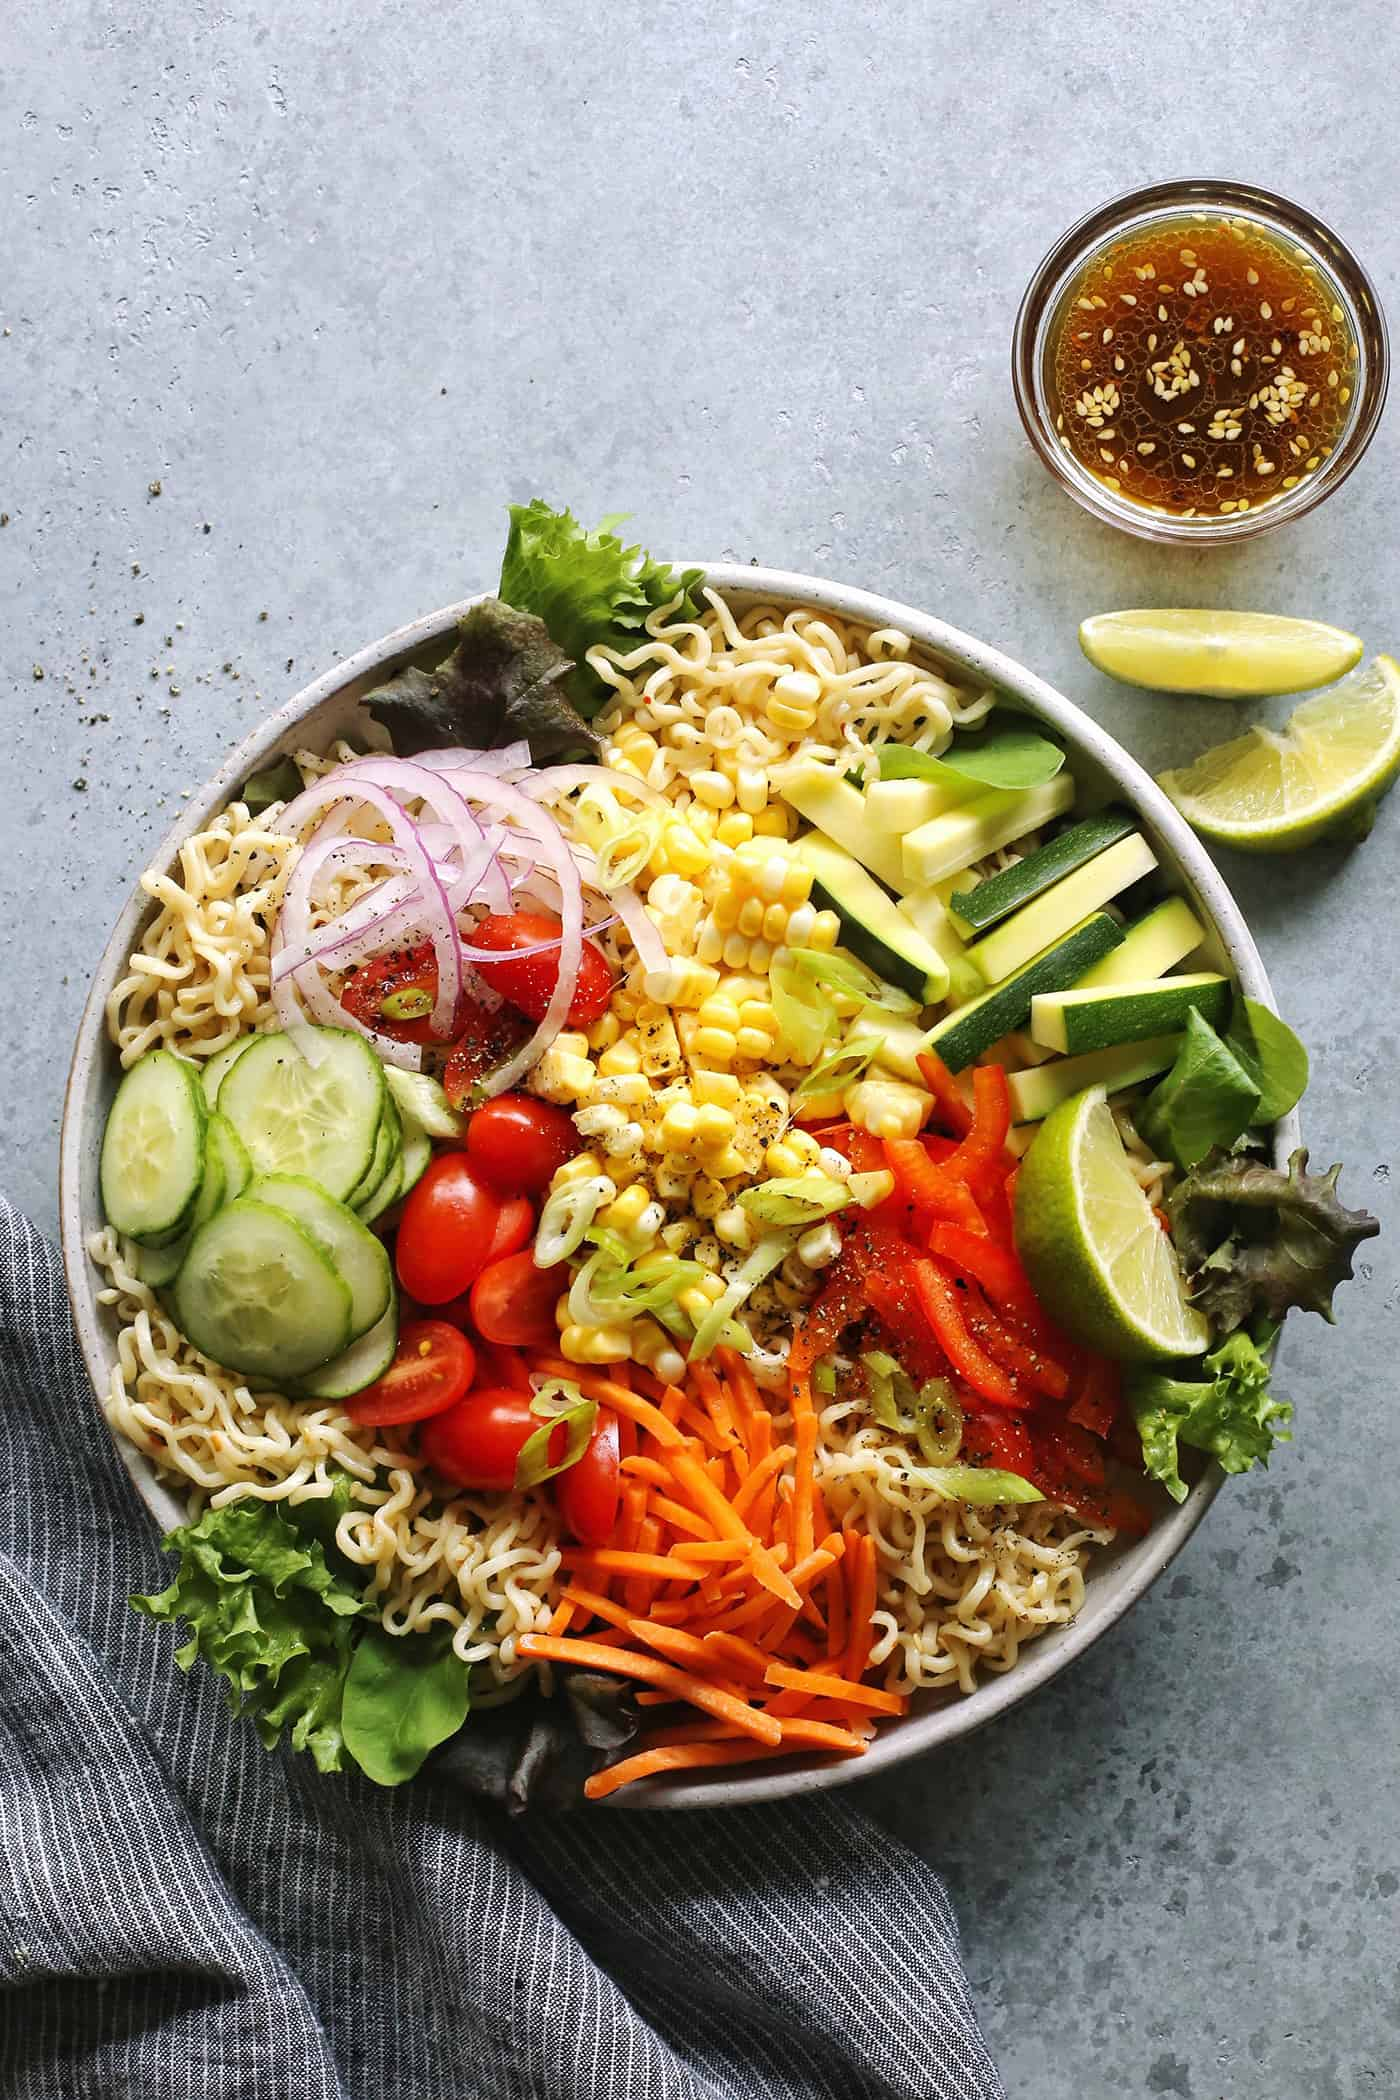 salad ramen in a light gray bowl with a cup of dressing on the side